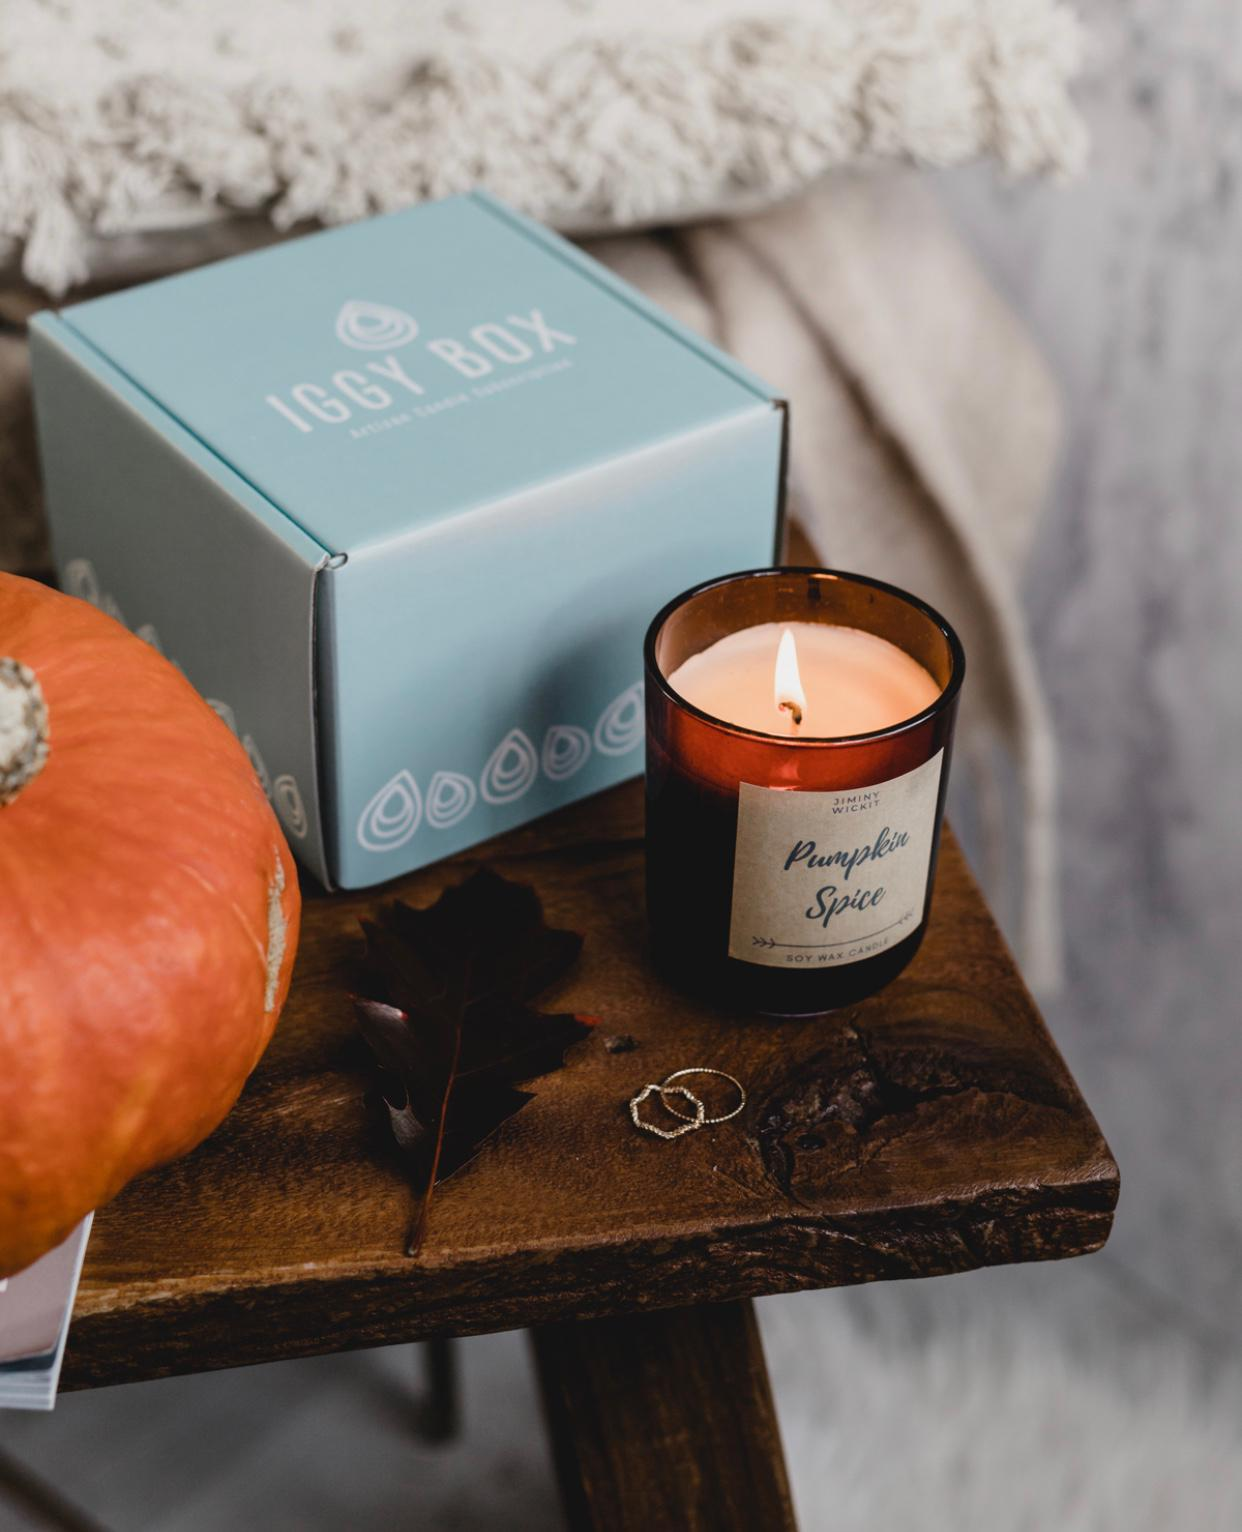 Scented candle - Pumpkin table